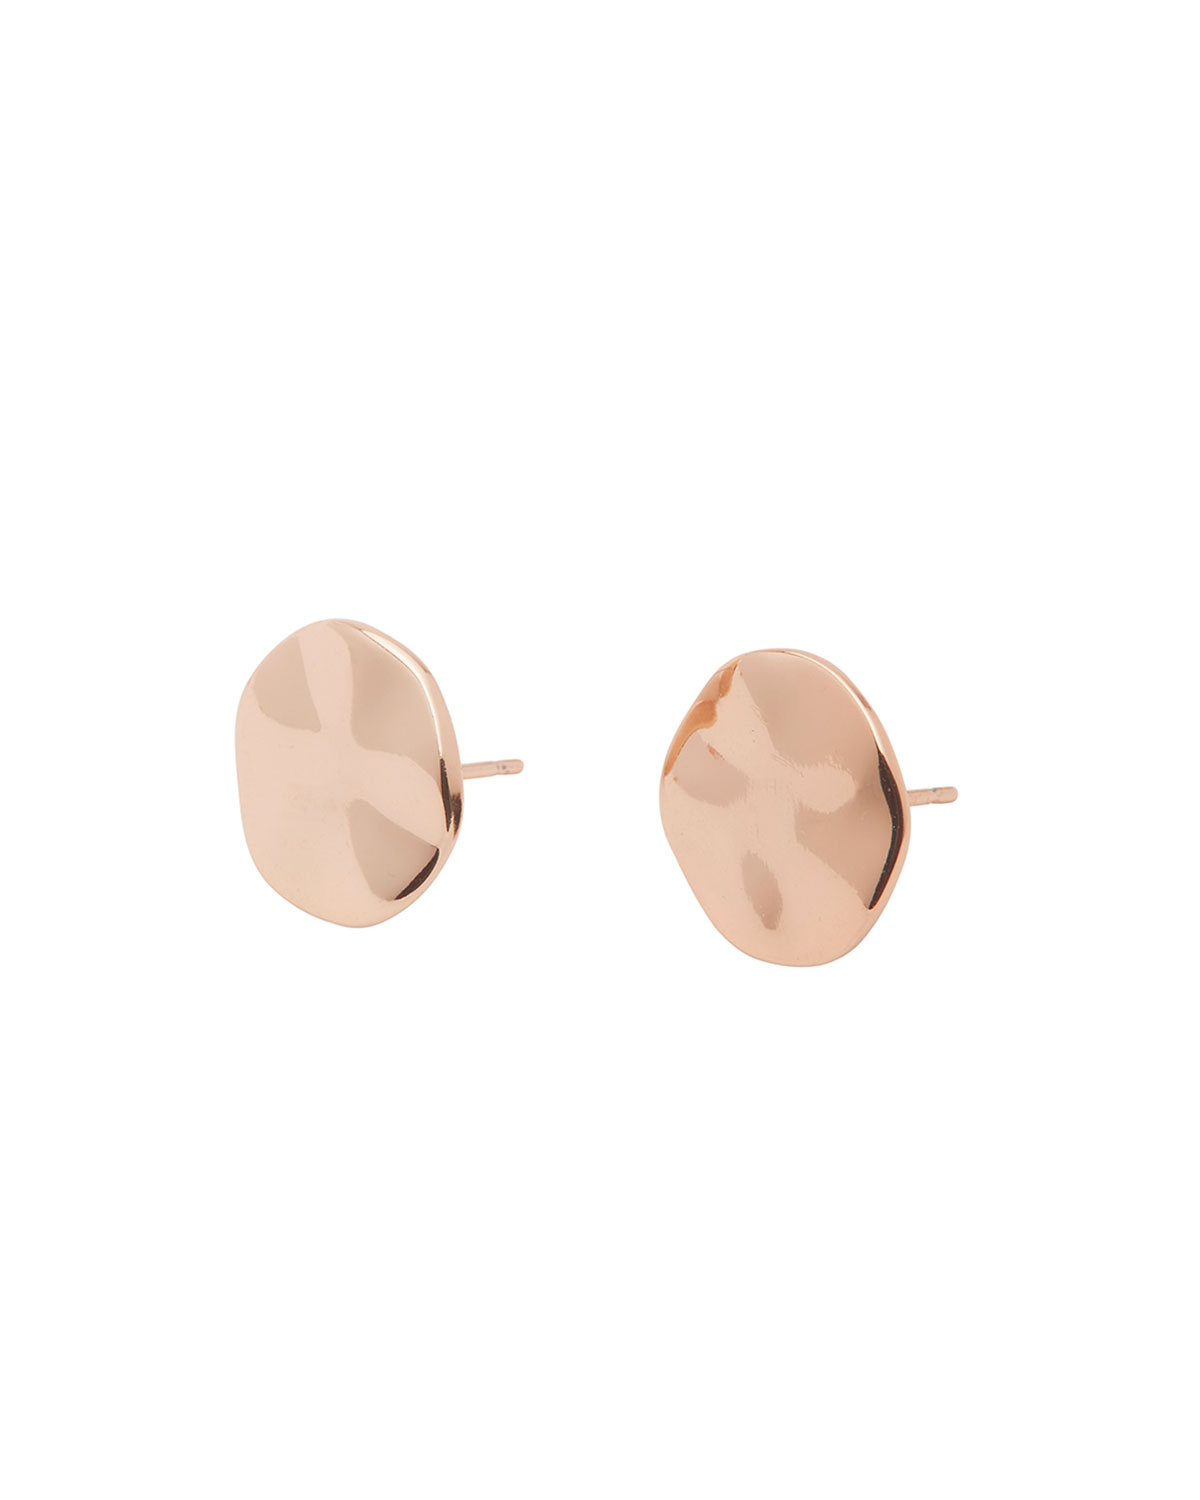 Chloe Hammered Disc Stud Earrings